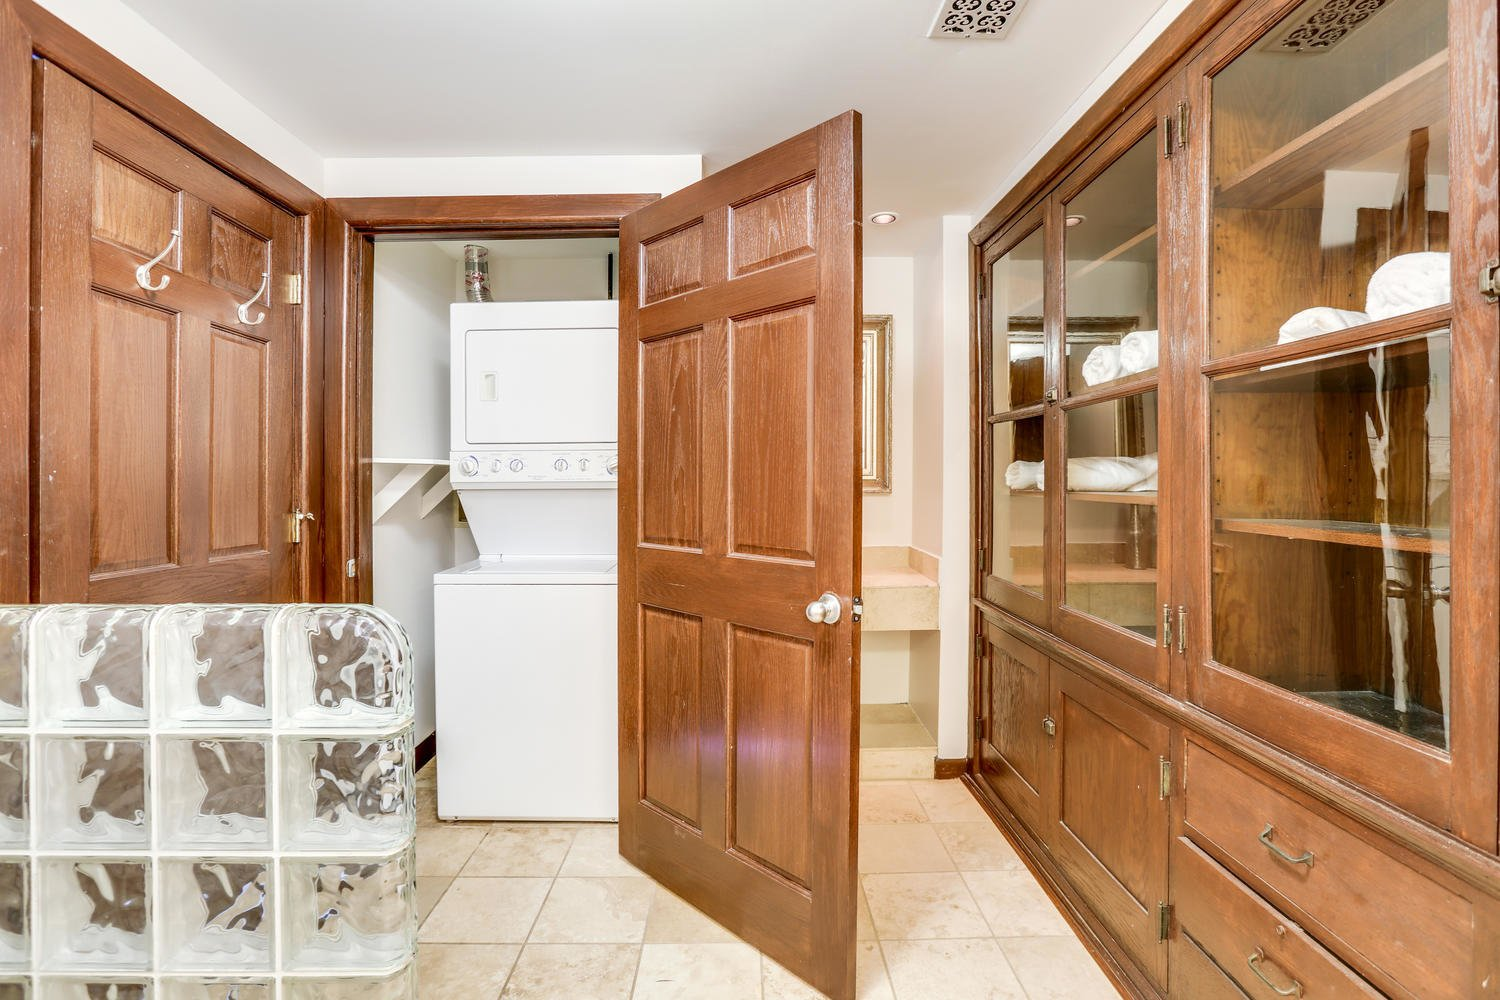 Laundry Room, Wood Cabinet, and Stacked The bathroom conceals the washer/dryer, and also benefits from original cabinetry.     Photo 8 of 9 in Grab This Dazzling Detroit Loft in a Historic School Building For $450K